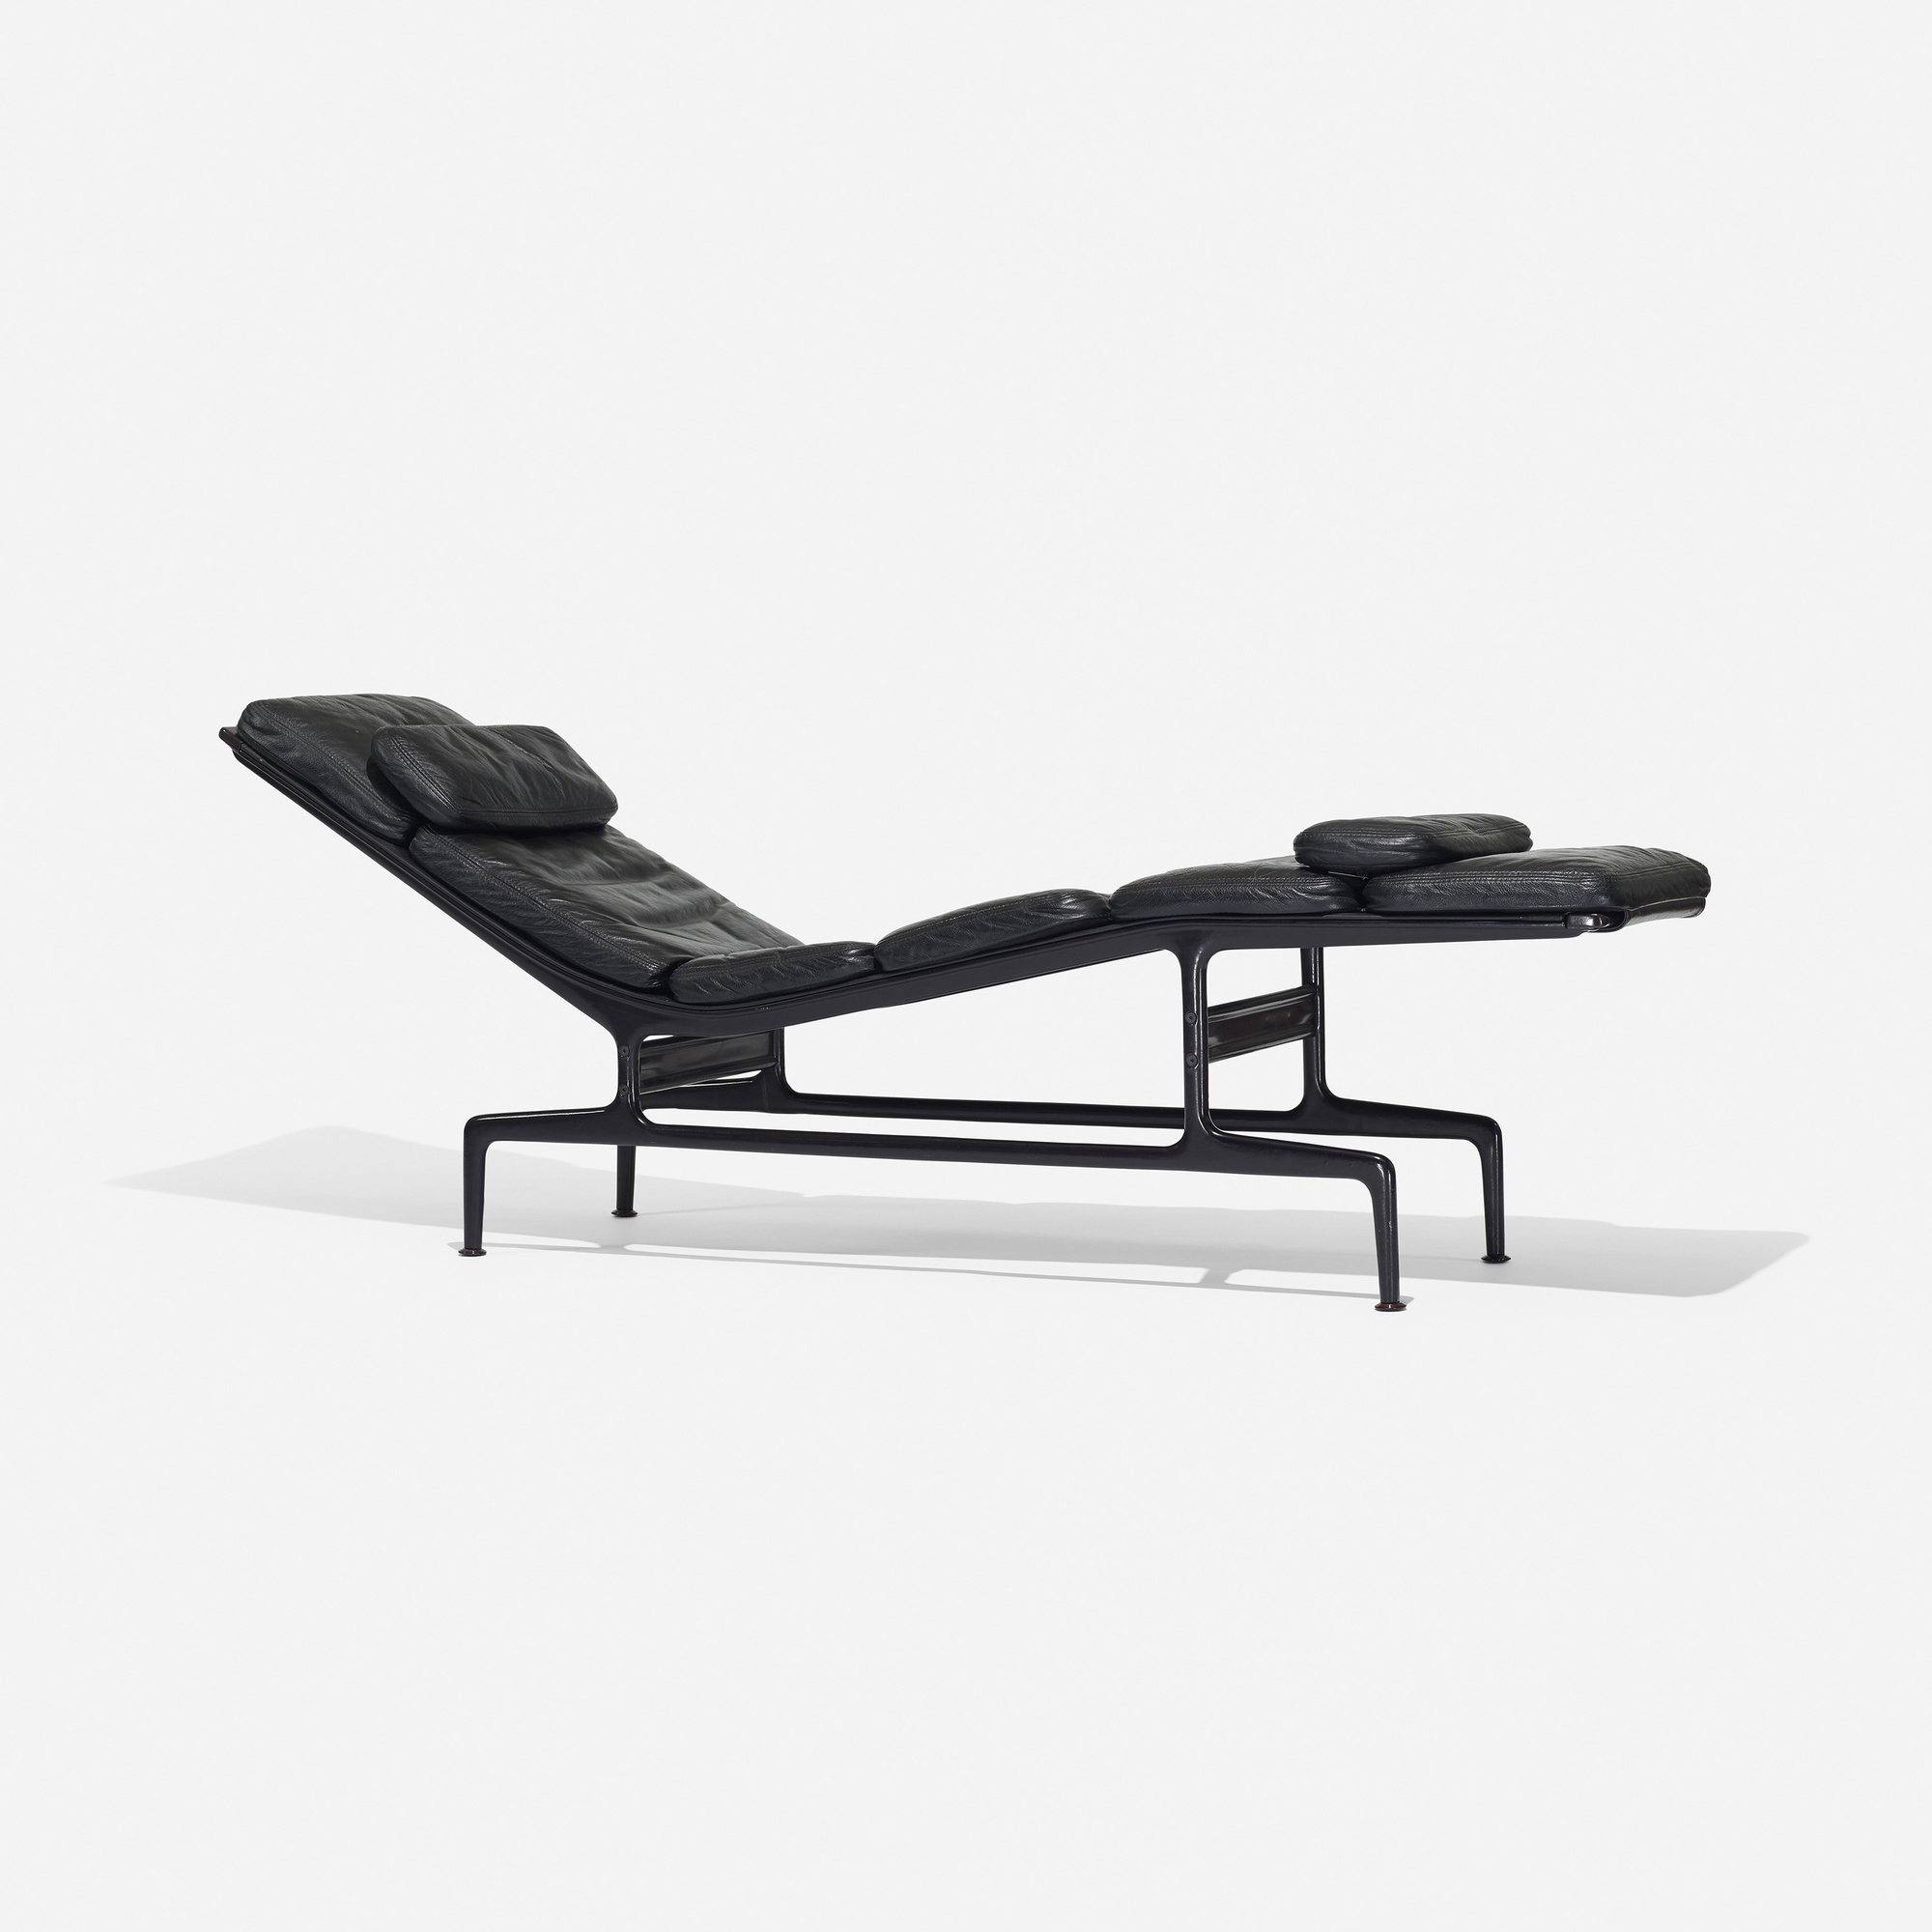 Eames chaises charles and ray eames la chaise of with eames chaises beautiful chaise charles - Chaise charles eames copie ...